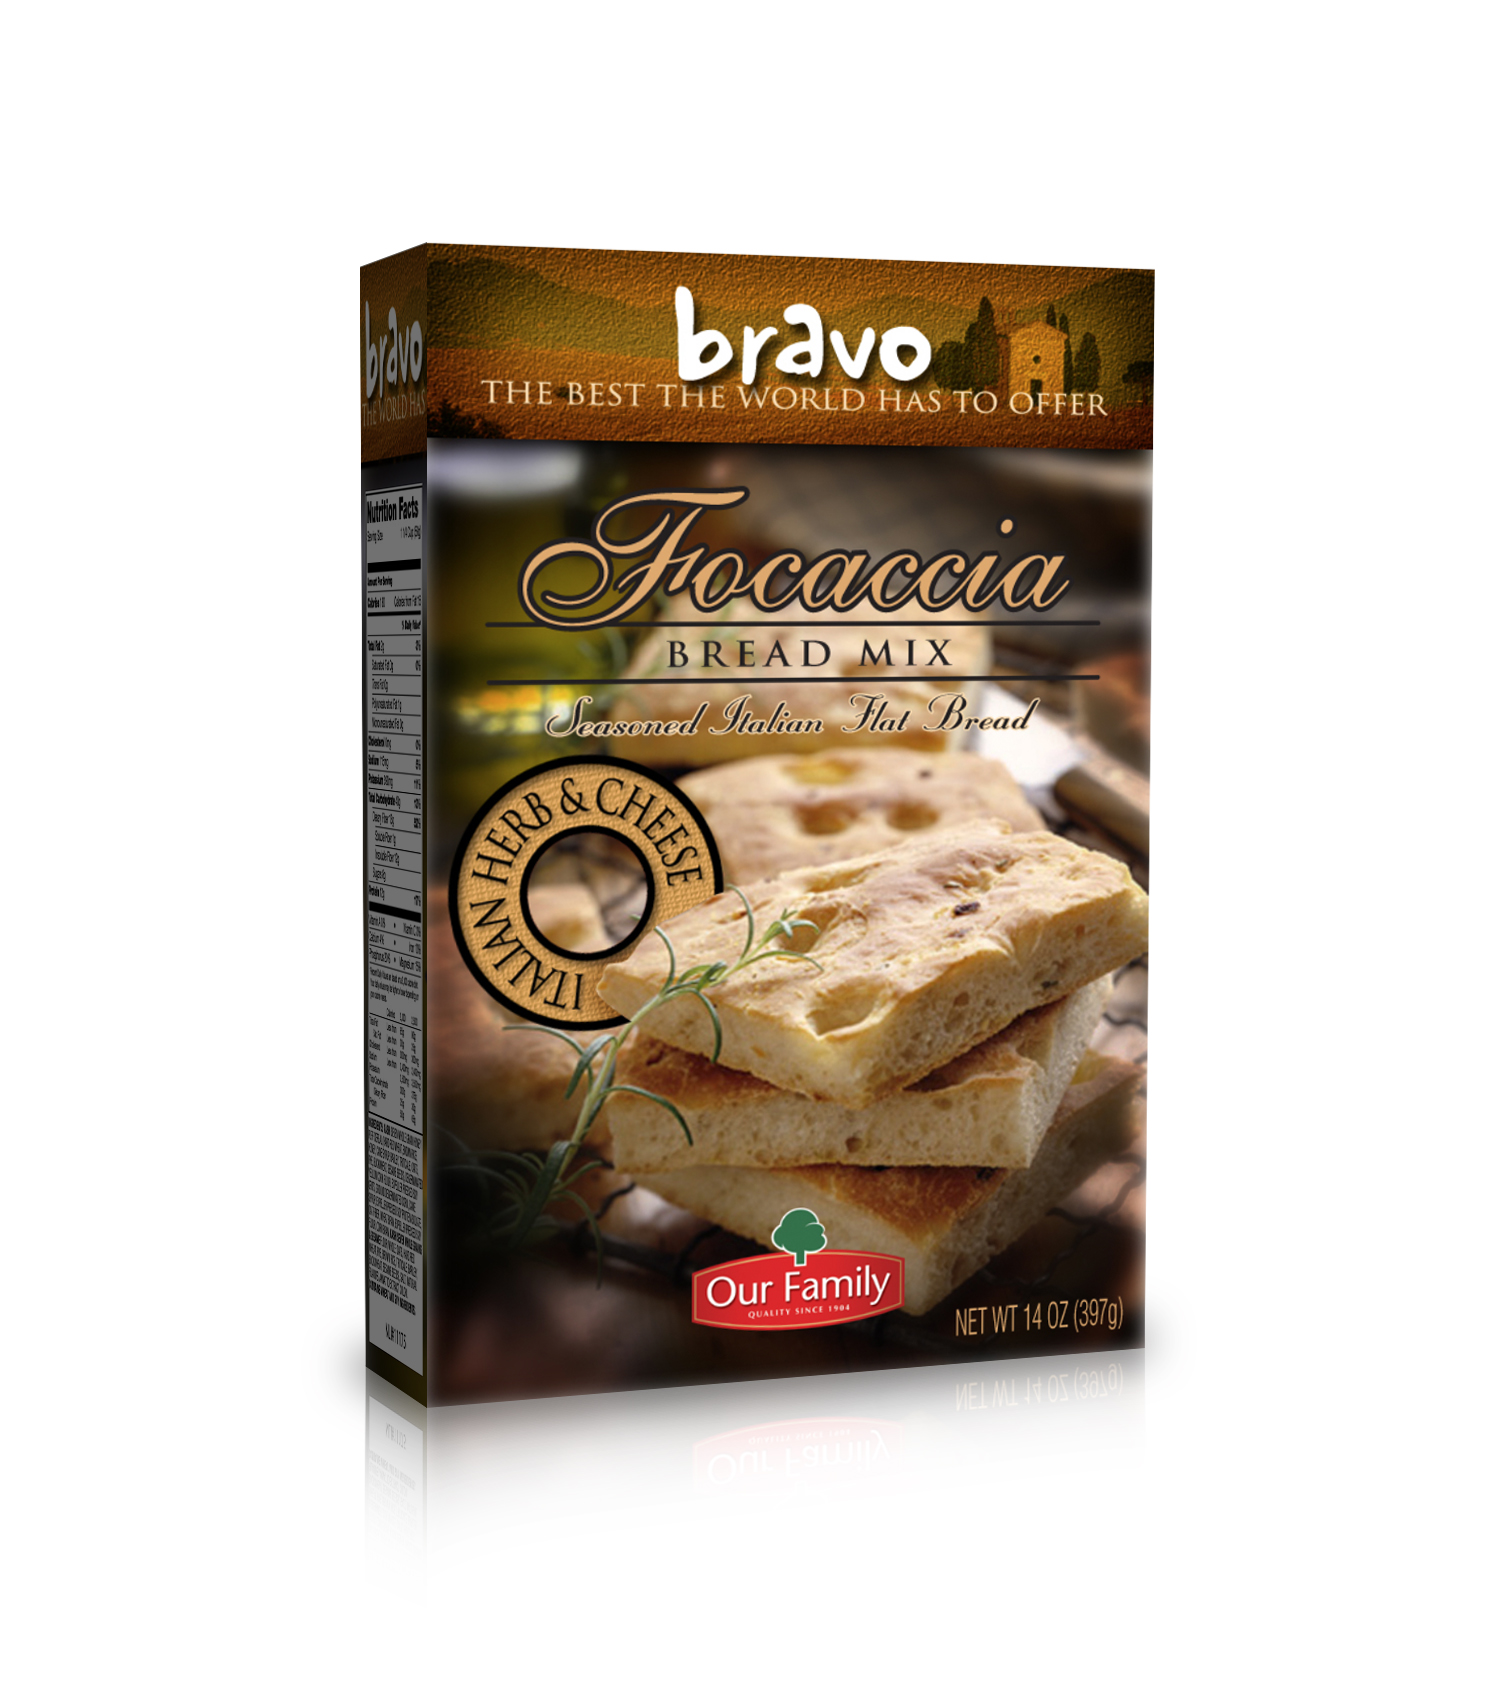 Whoville Our Family Bravo Focaccia Package.jpg